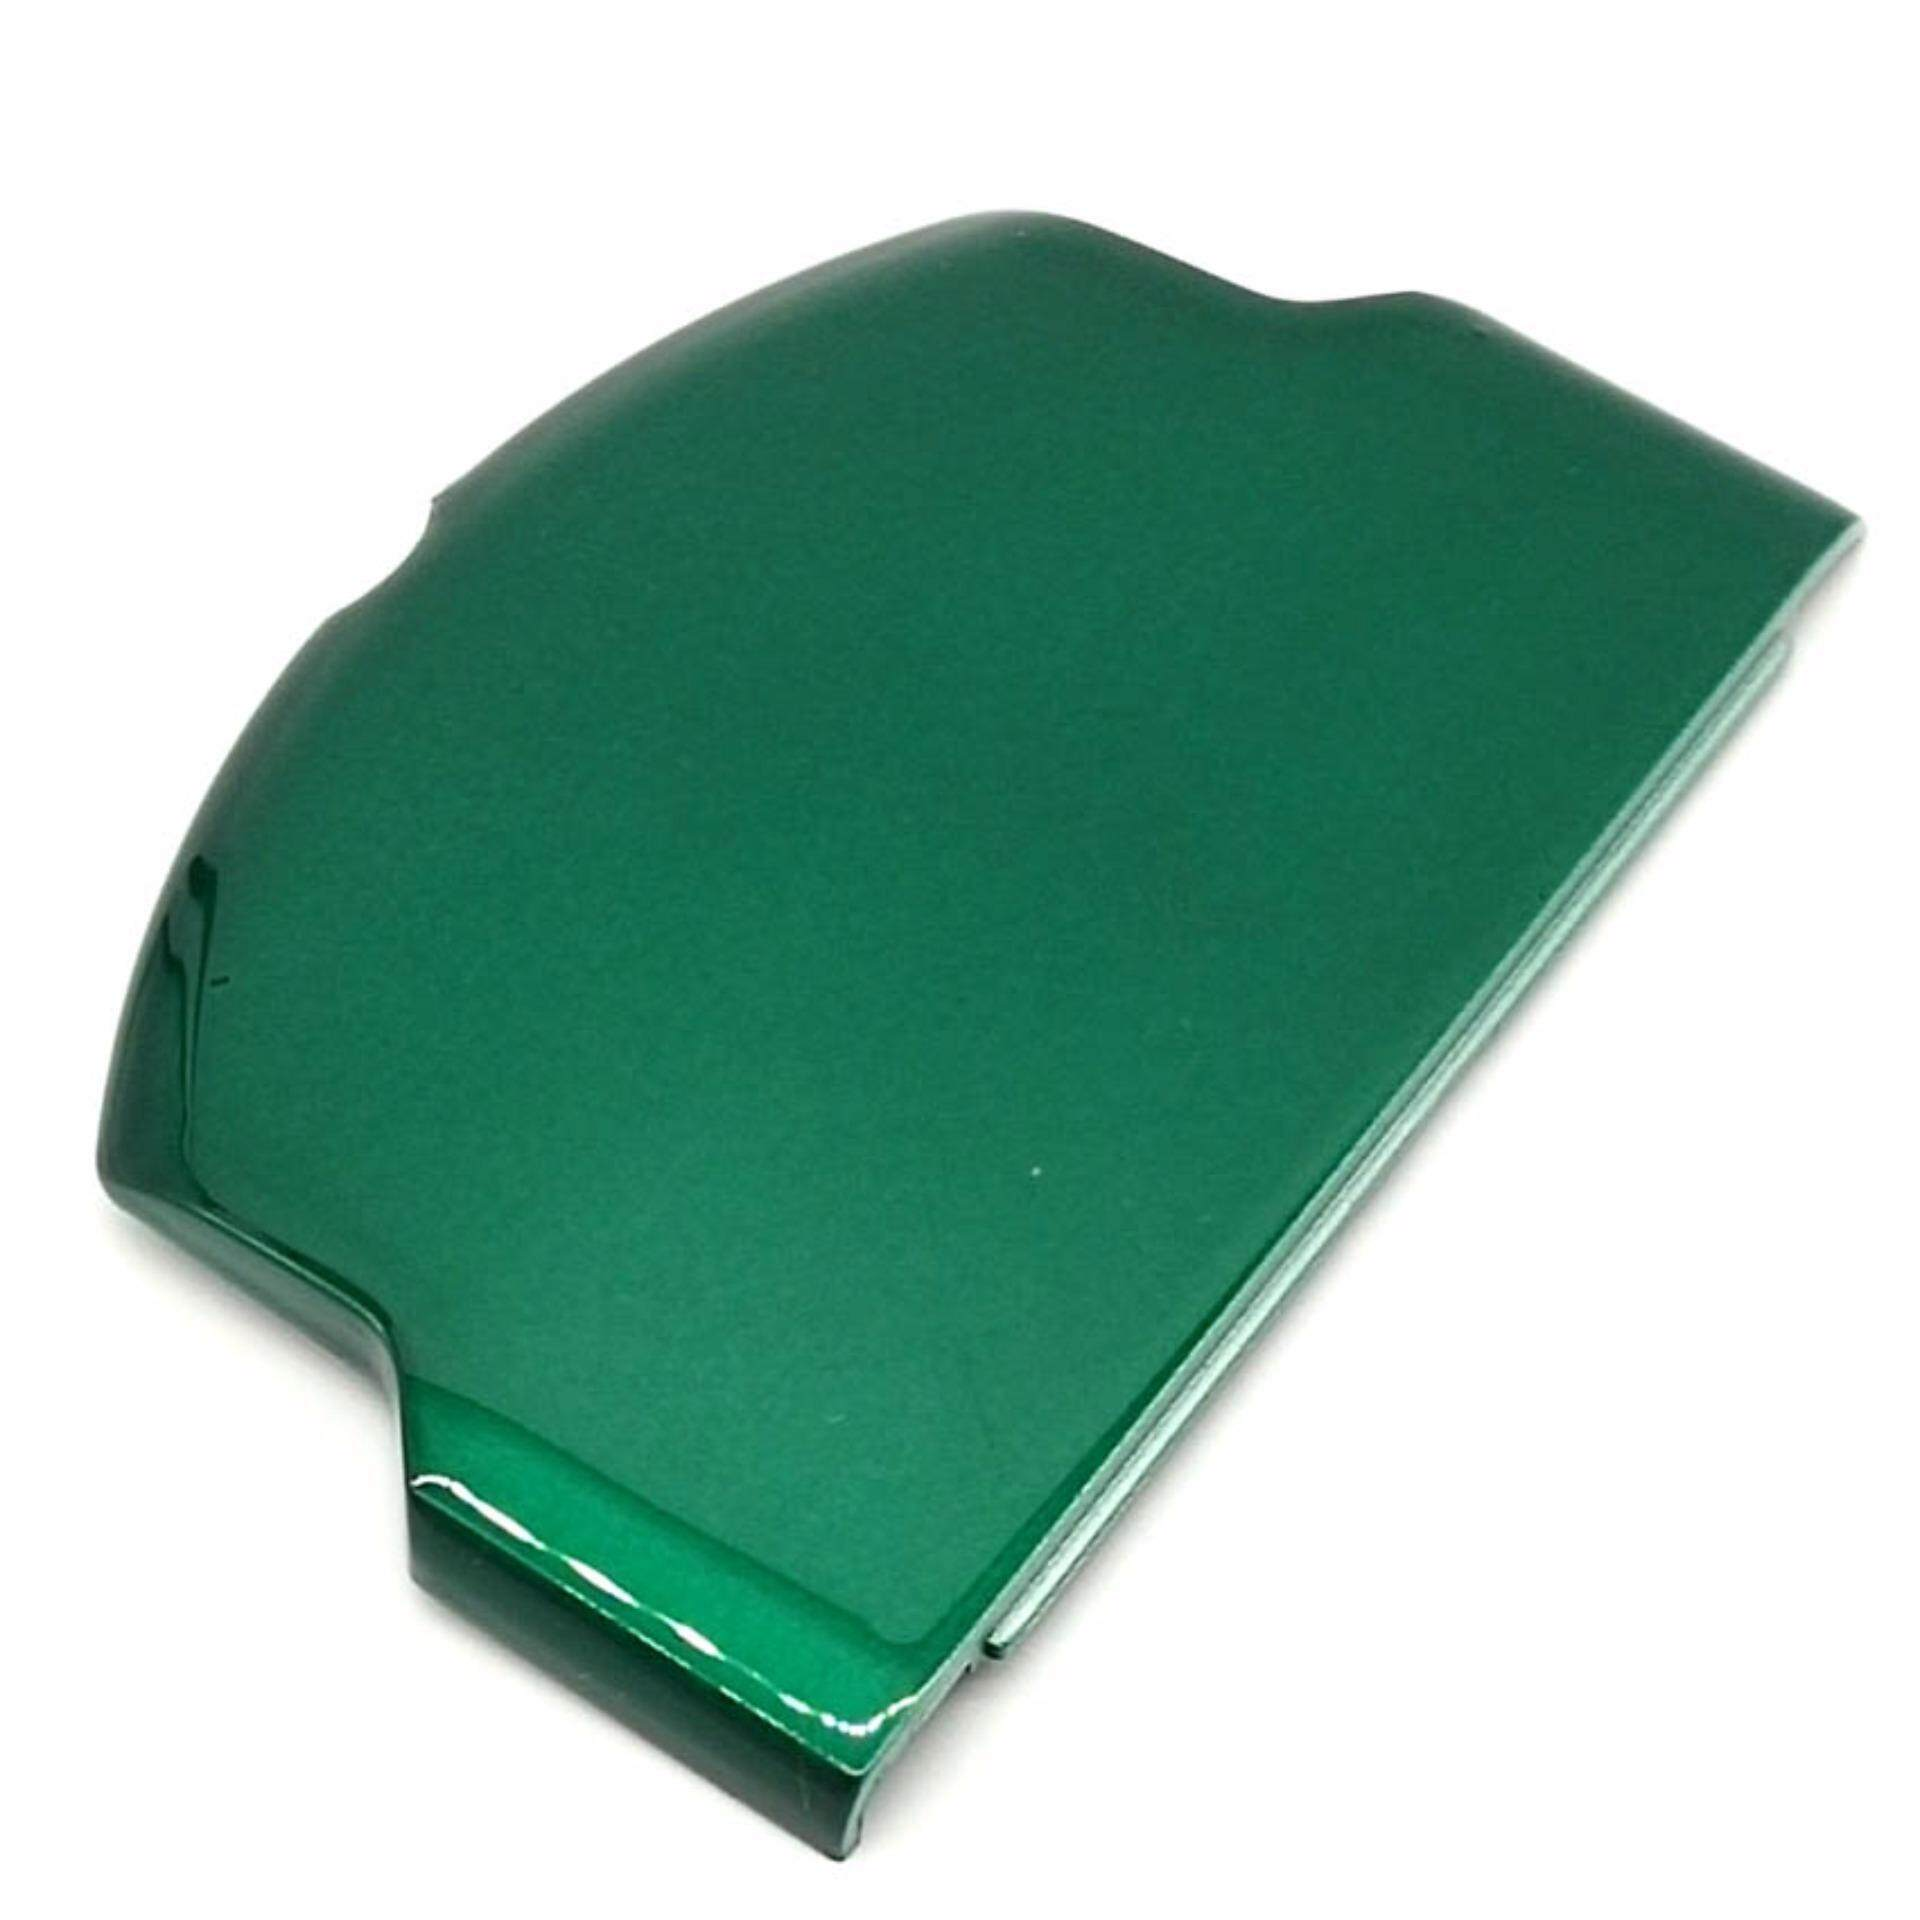 Battery Cover Back Replacement Case for PSP 2000 / PSP 3000 (Dark Green)